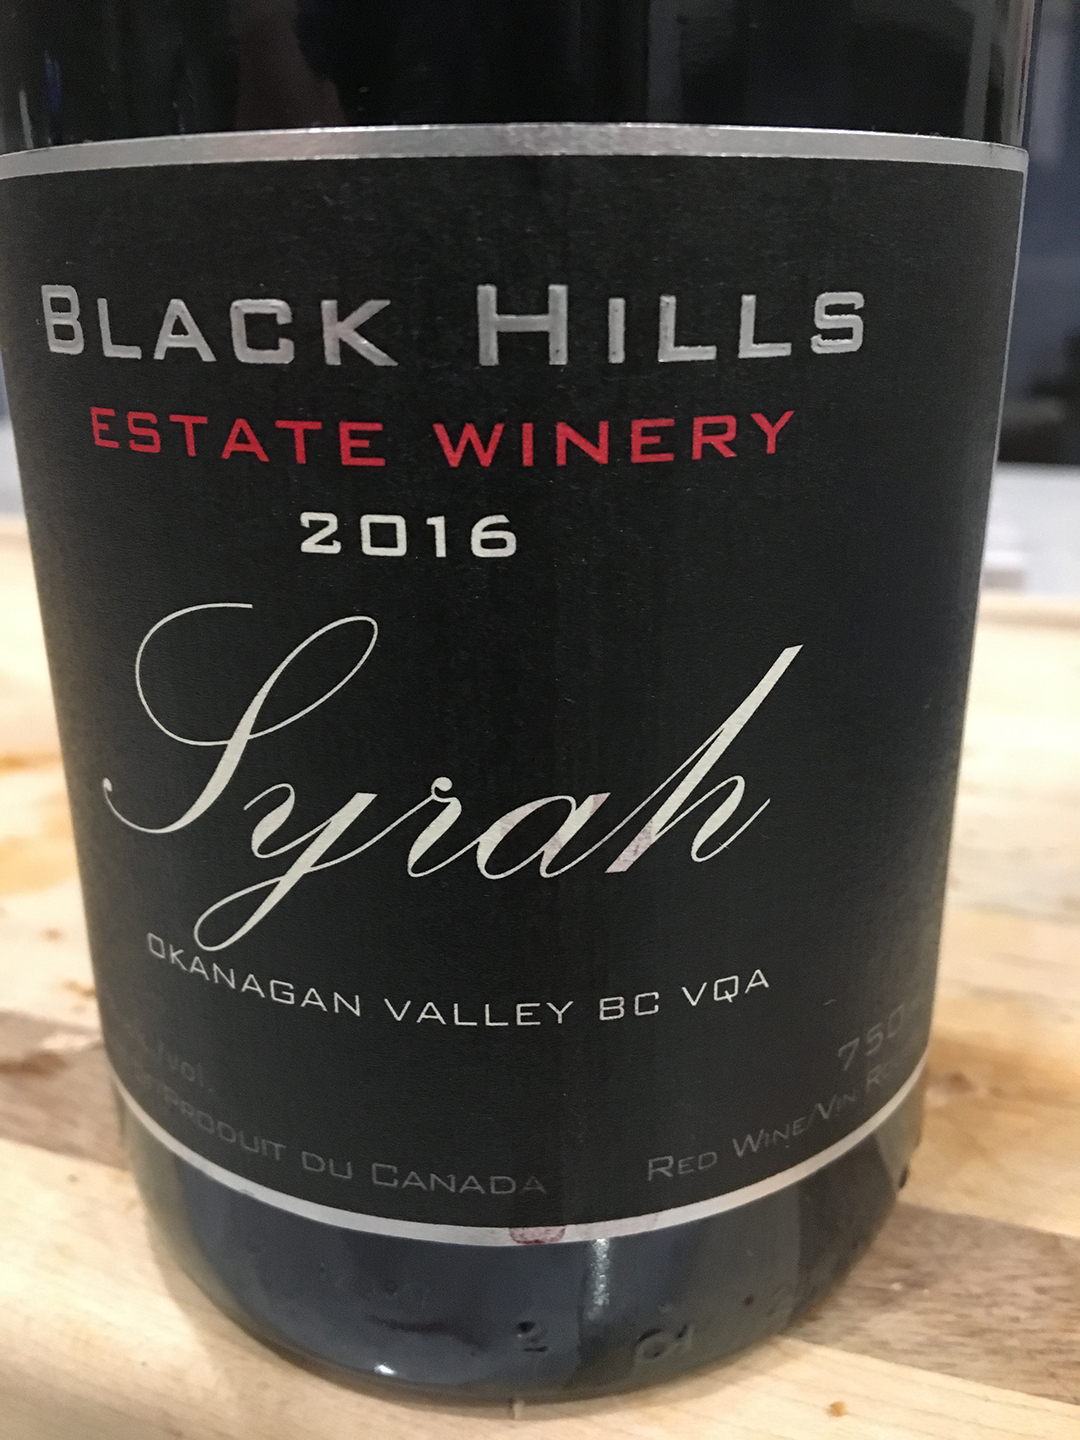 Black Hills Estate Winery Syrah 2016